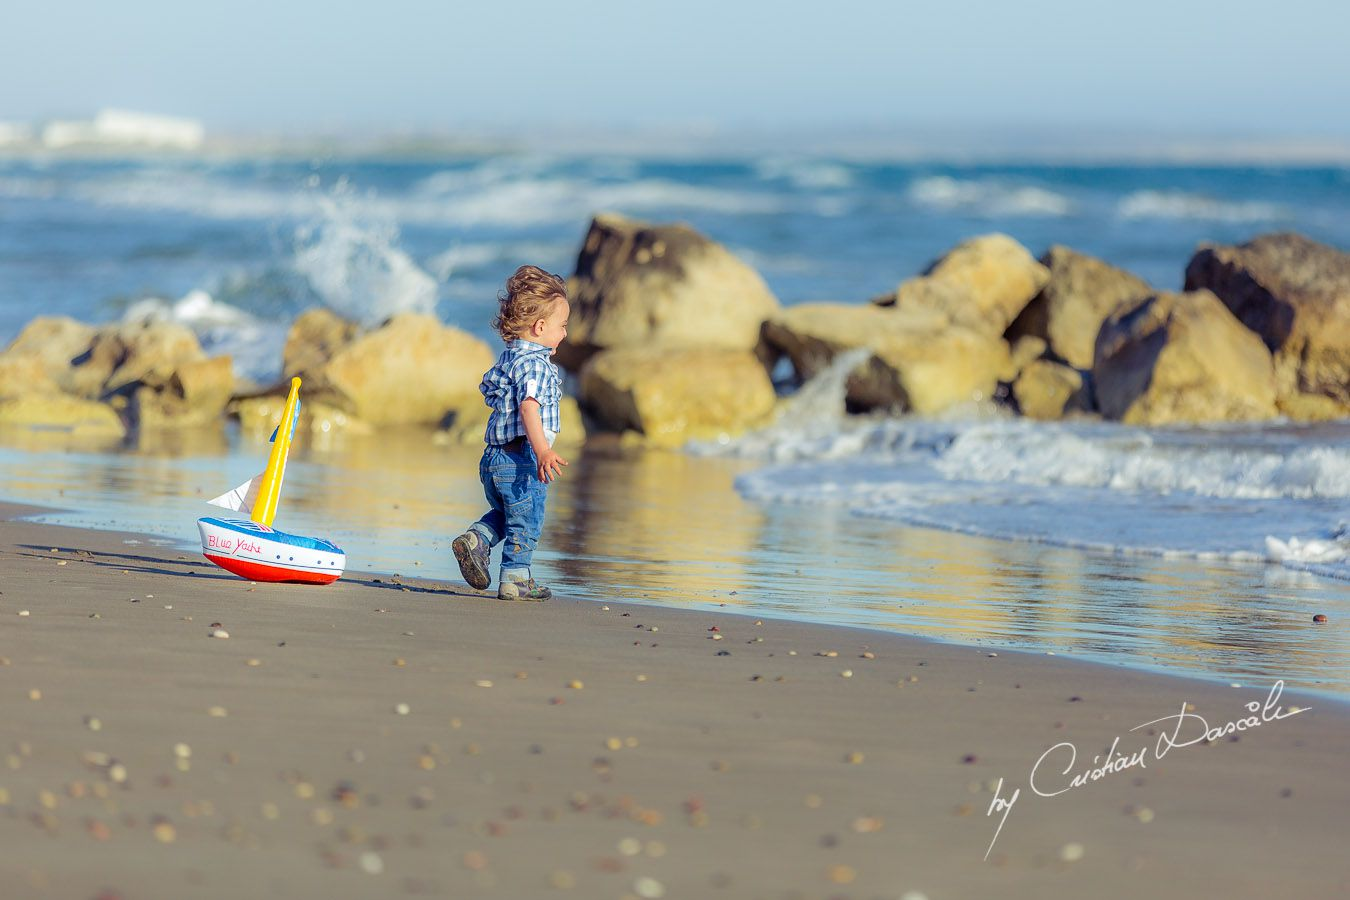 Precious moments: Harry at Curium Beach, Cyprus. Photographer: Cristian Dascalu